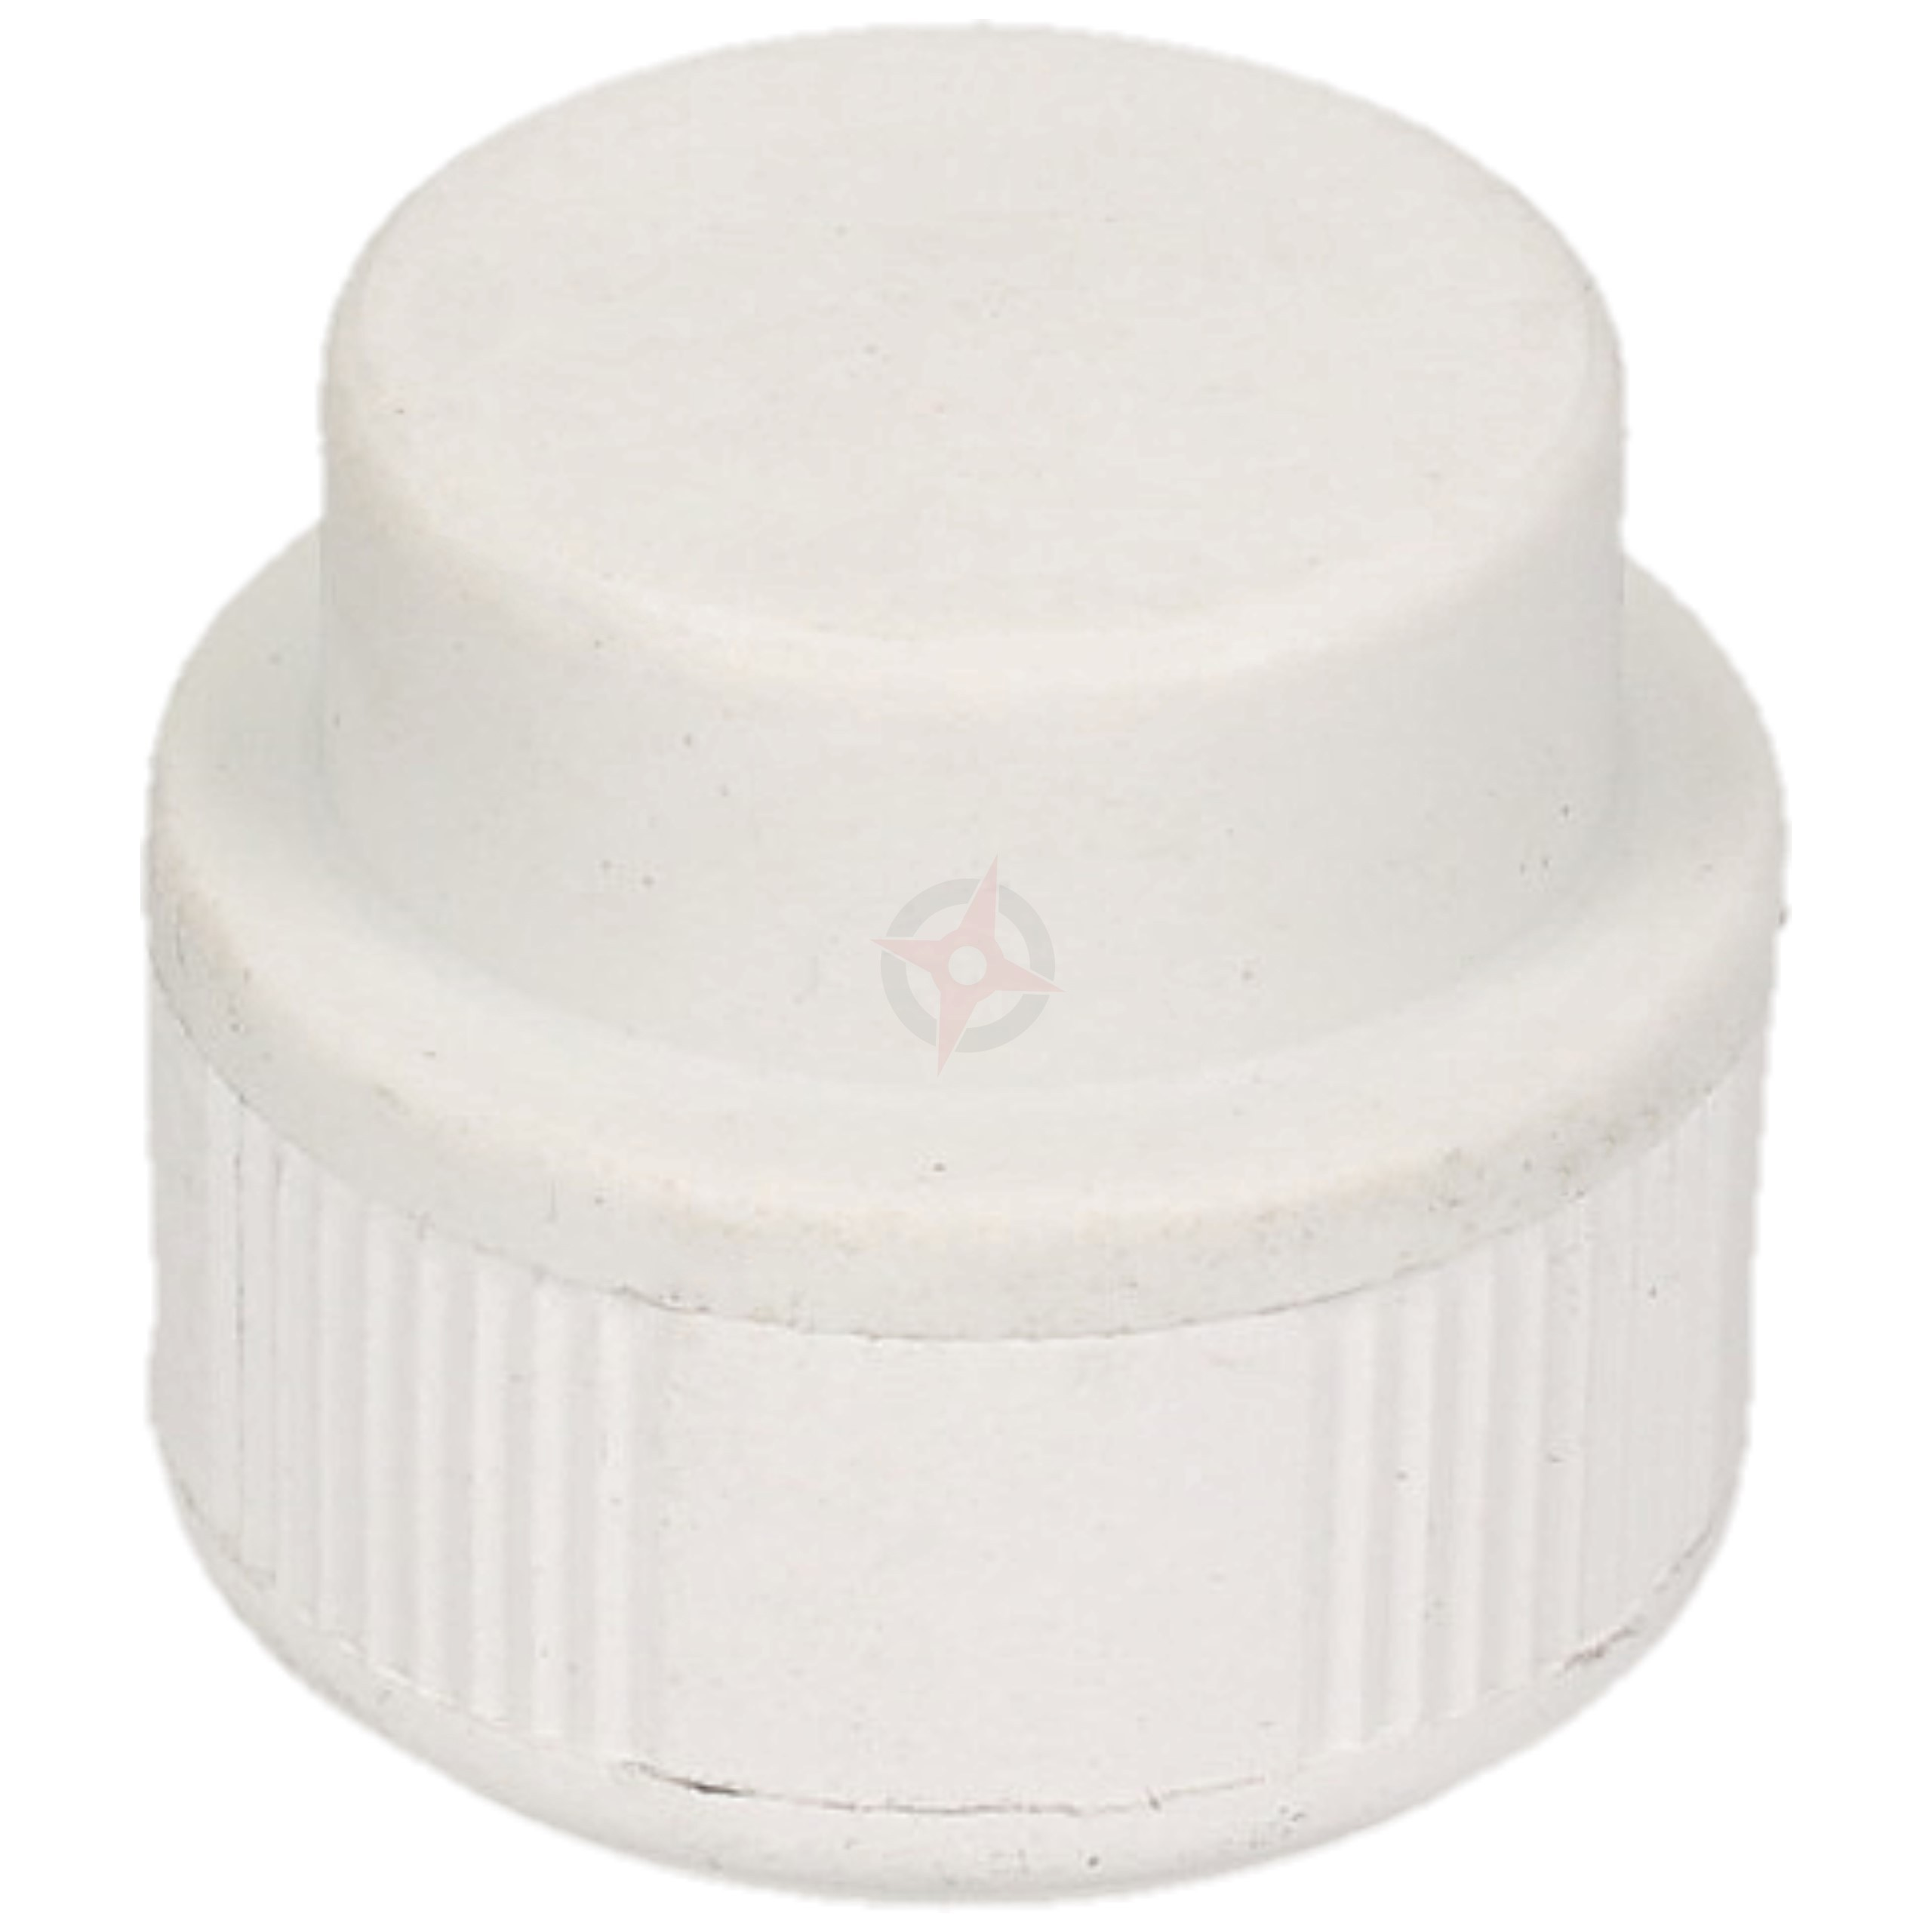 Whitespeed Push Fit 22mm Stop End Cap